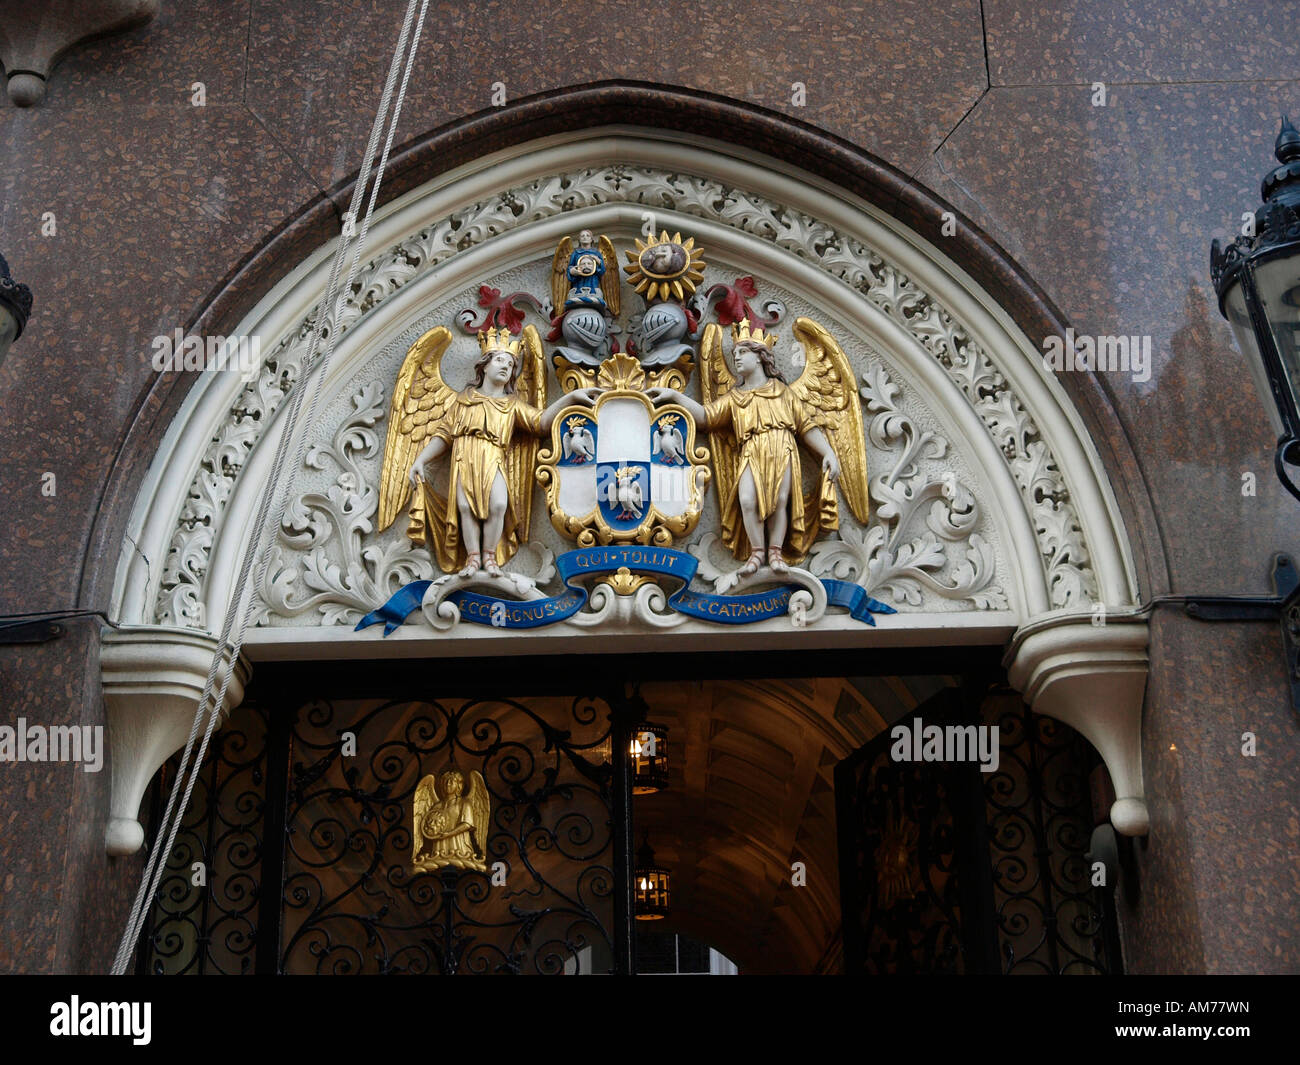 The Guild Crest above the entrance to Tallow Chandlers Hall, Dowgate Hill, London, EC4R 2SH - Stock Image